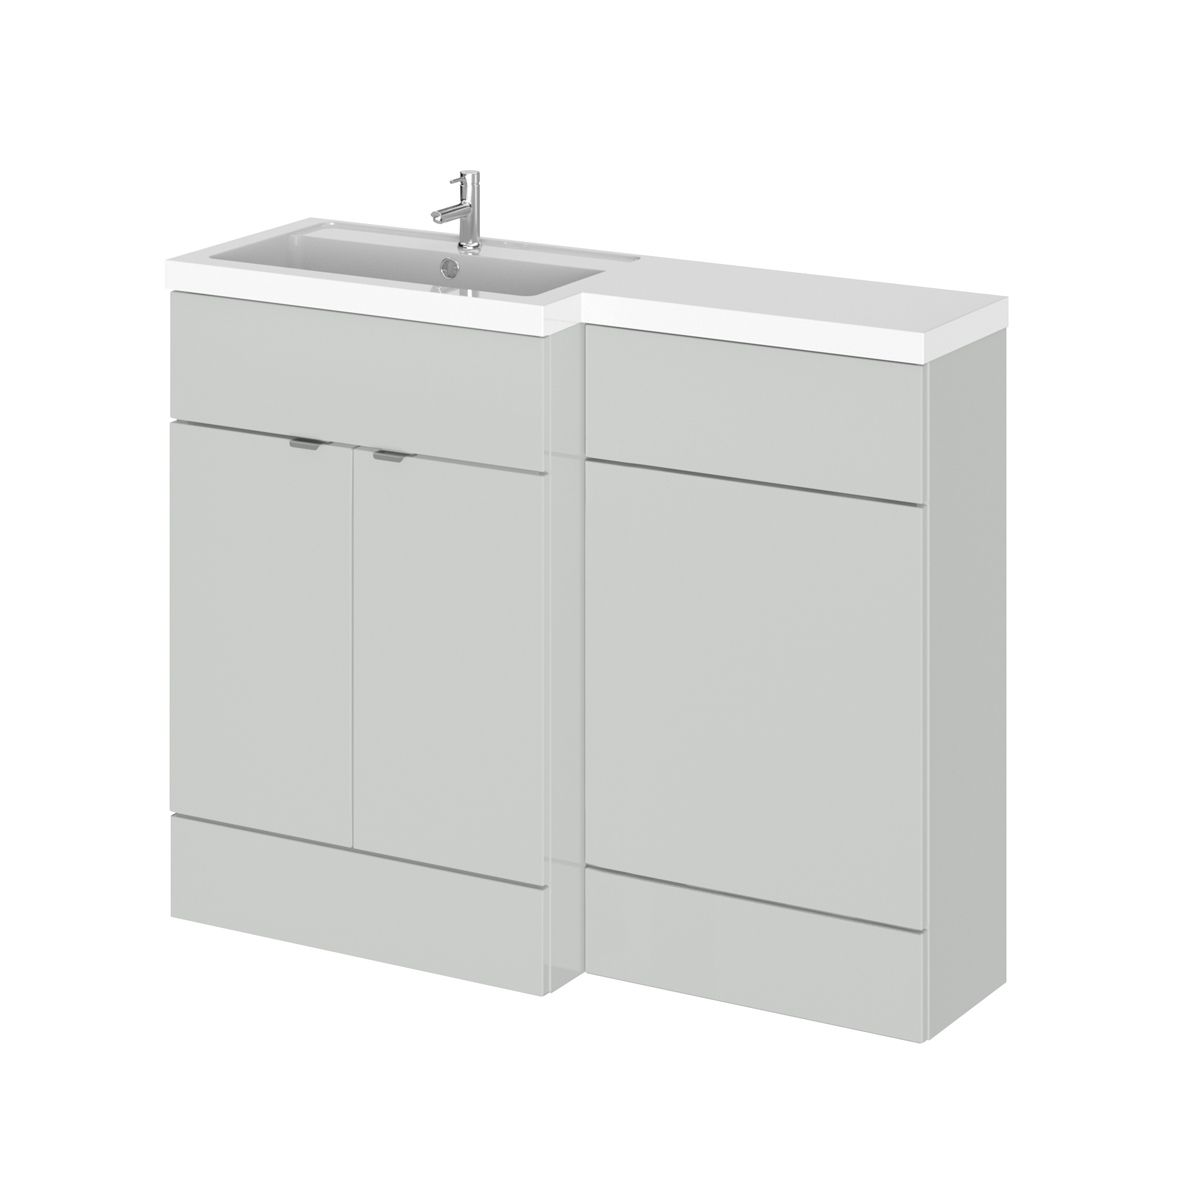 Hudson Reed Fusion Gloss Grey Mist Full Depth Combination Furniture Pack 1100mm Left Hand